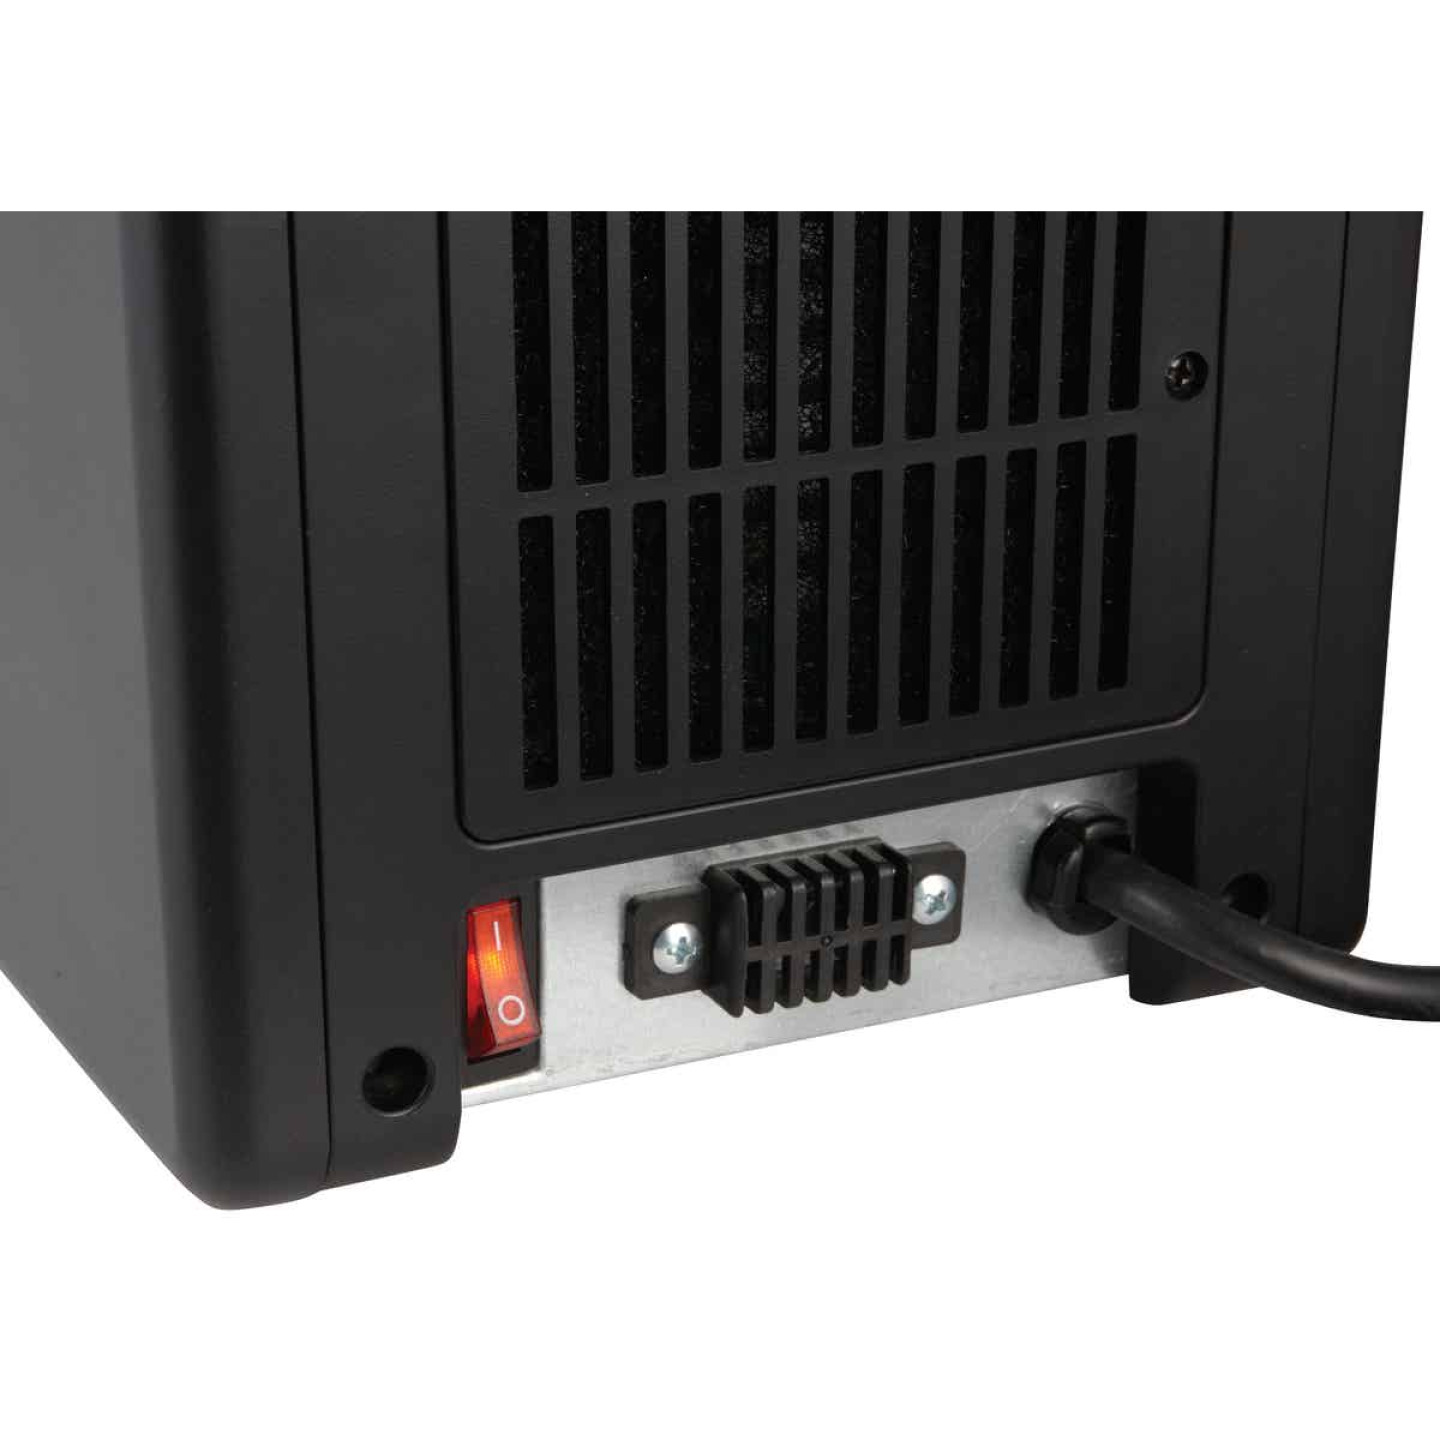 Best Comfort 1500-Watt 120-Volt Quartz Heater with Remote Image 3